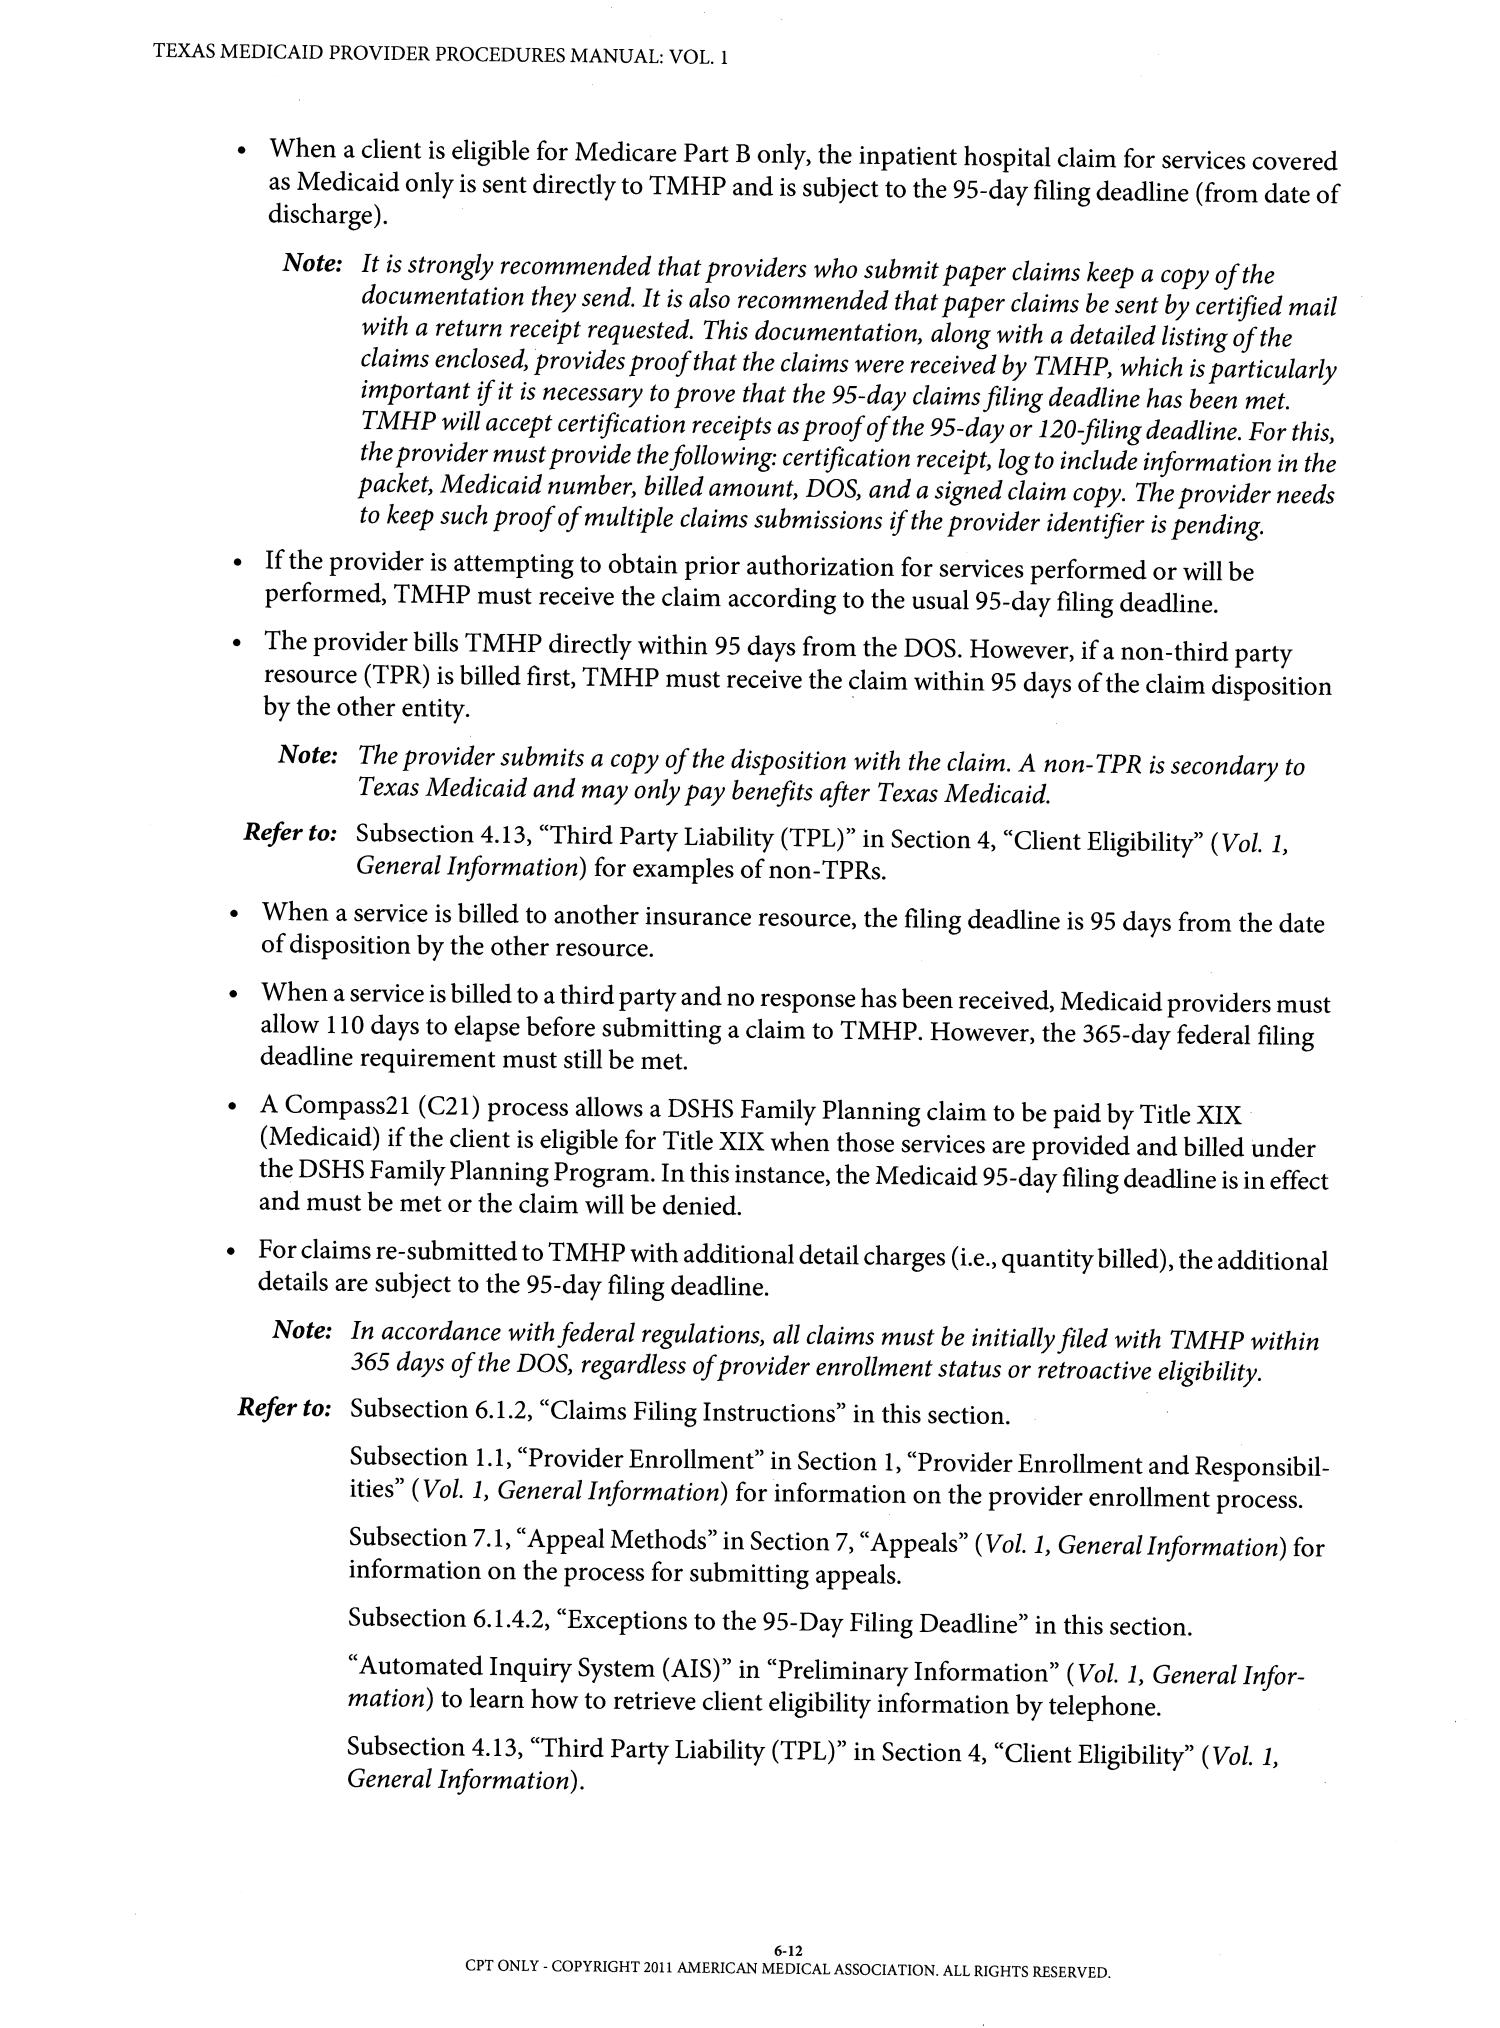 Texas Medicaid Provider Procedures Manual: Volume 1, Generalrmation   Page 612  The Portal To Texas History